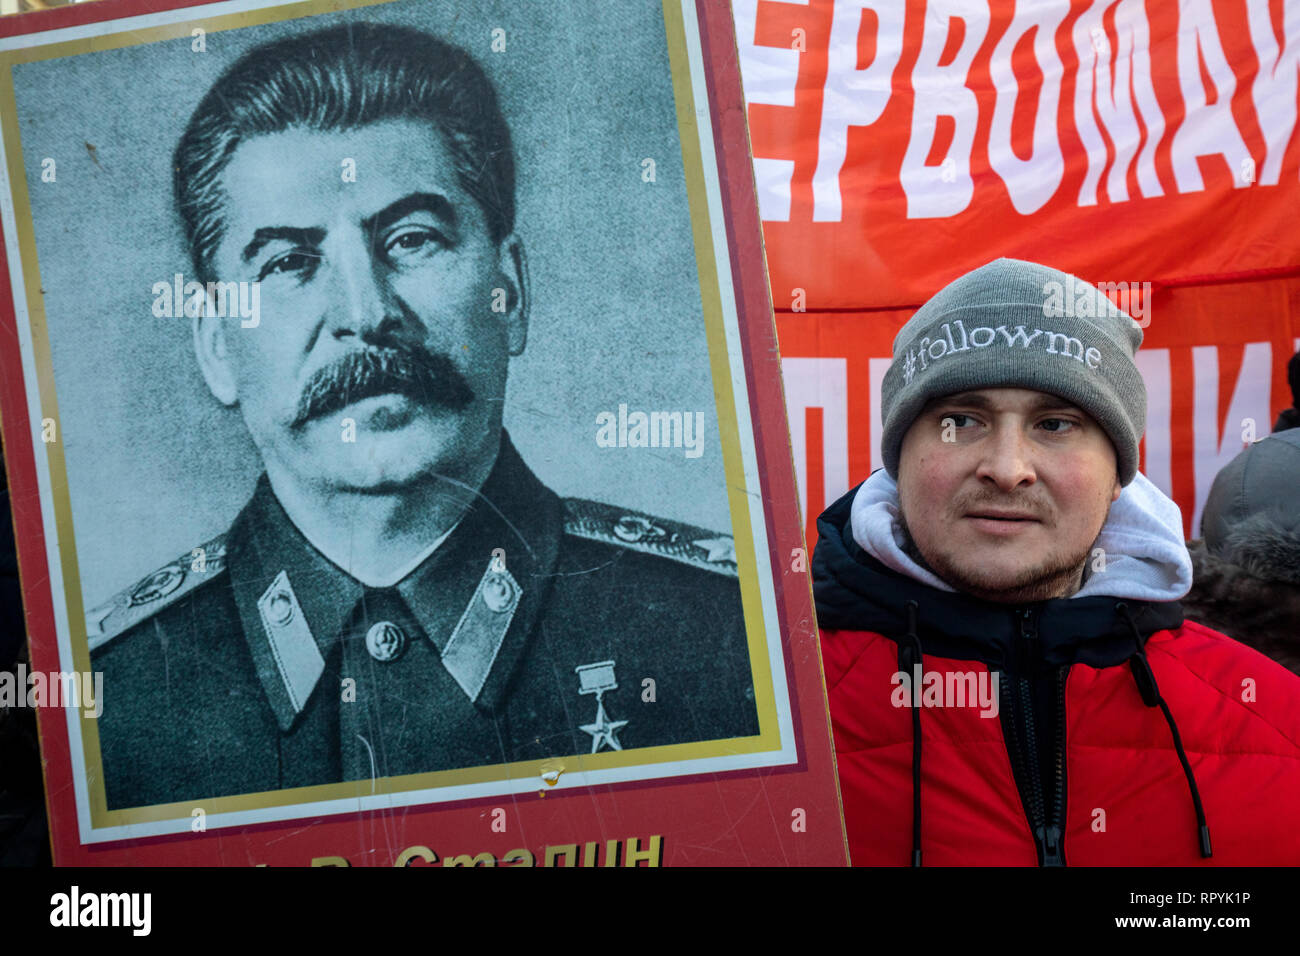 Moscow, Russia. 23 February, 2019: Participants in a march held by the Russian Communist Party in central Moscow to mark the 101st anniversary of establishment of the Red Army and the Navy on Defender of the Fatherland Day Credit: Nikolay Vinokurov/Alamy Live News - Stock Image